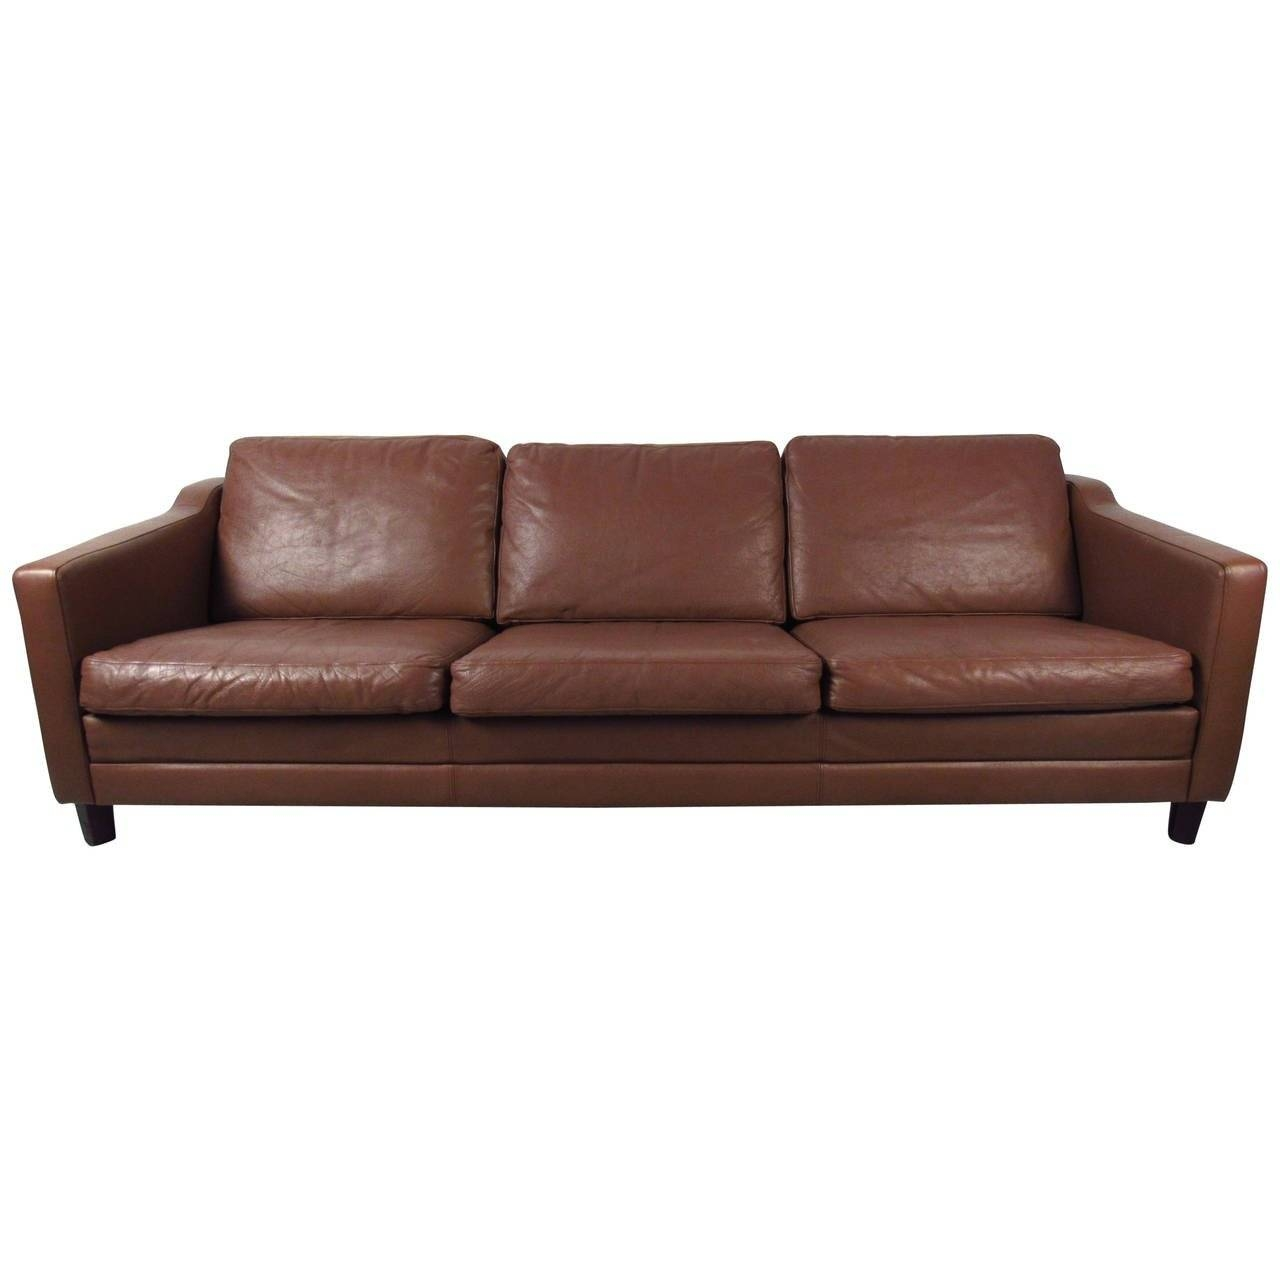 Mid-Century Modern Danish Leather Sofa In The Style Of Børge throughout Danish Leather Sofas (Image 13 of 15)